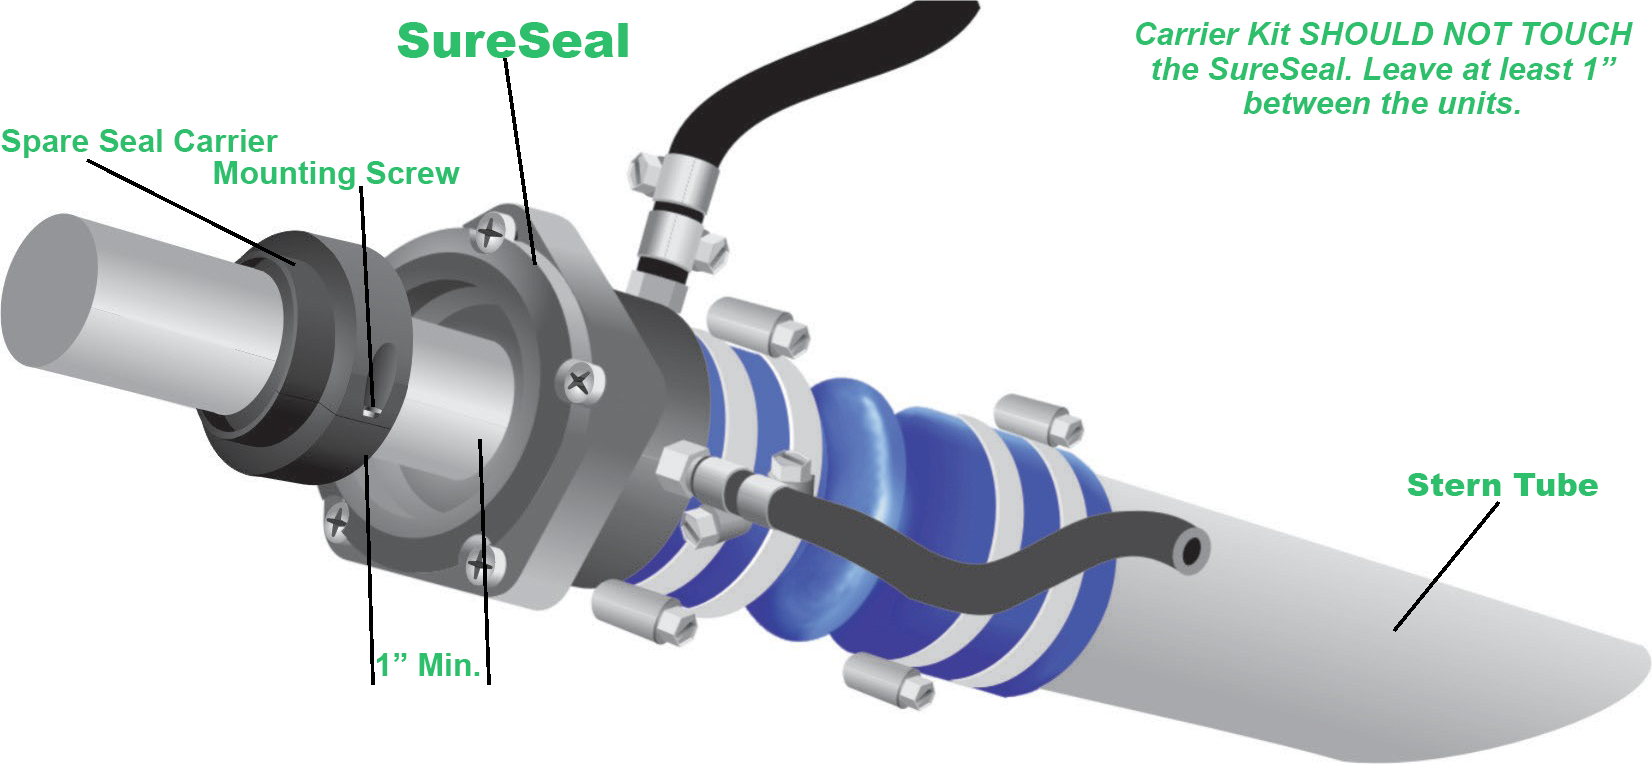 SPare Seal Carrier